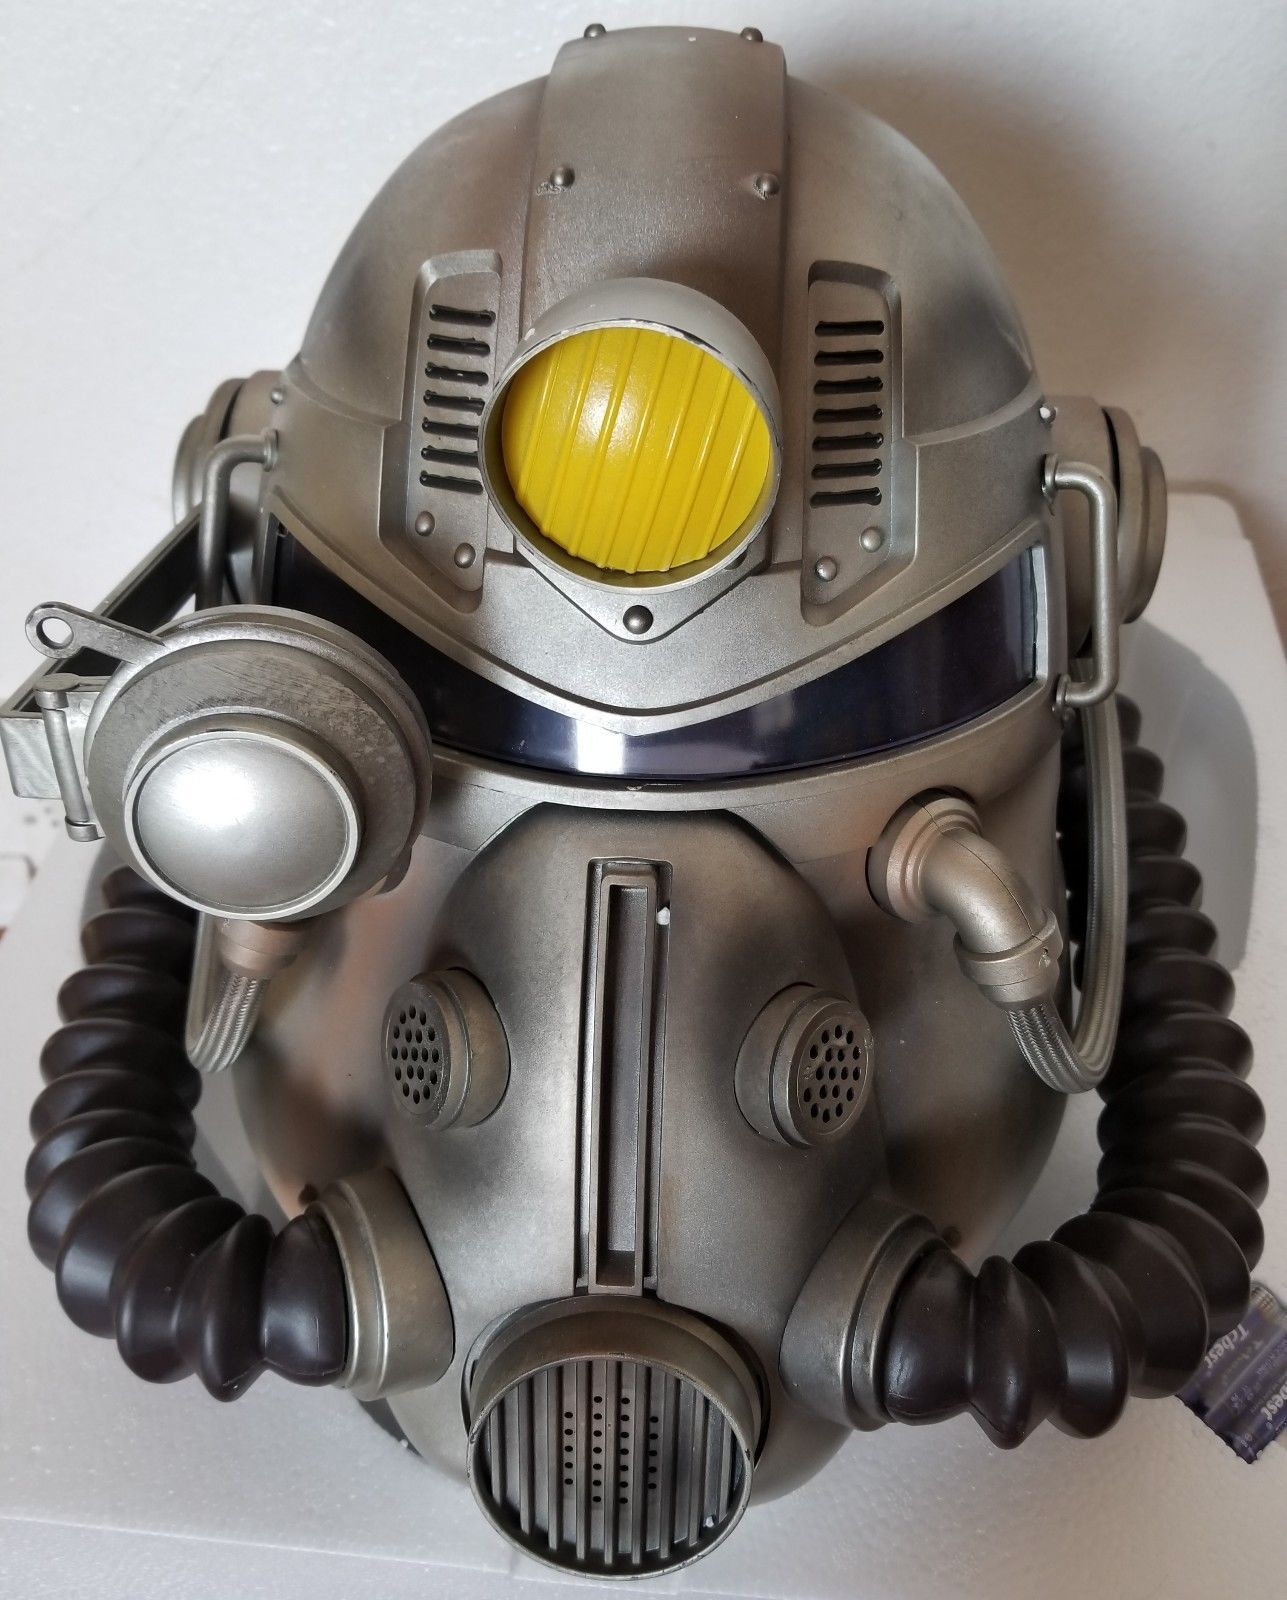 Details about FALLOUT 76 Wearable T-51B POWER ARMOR HELMET * With